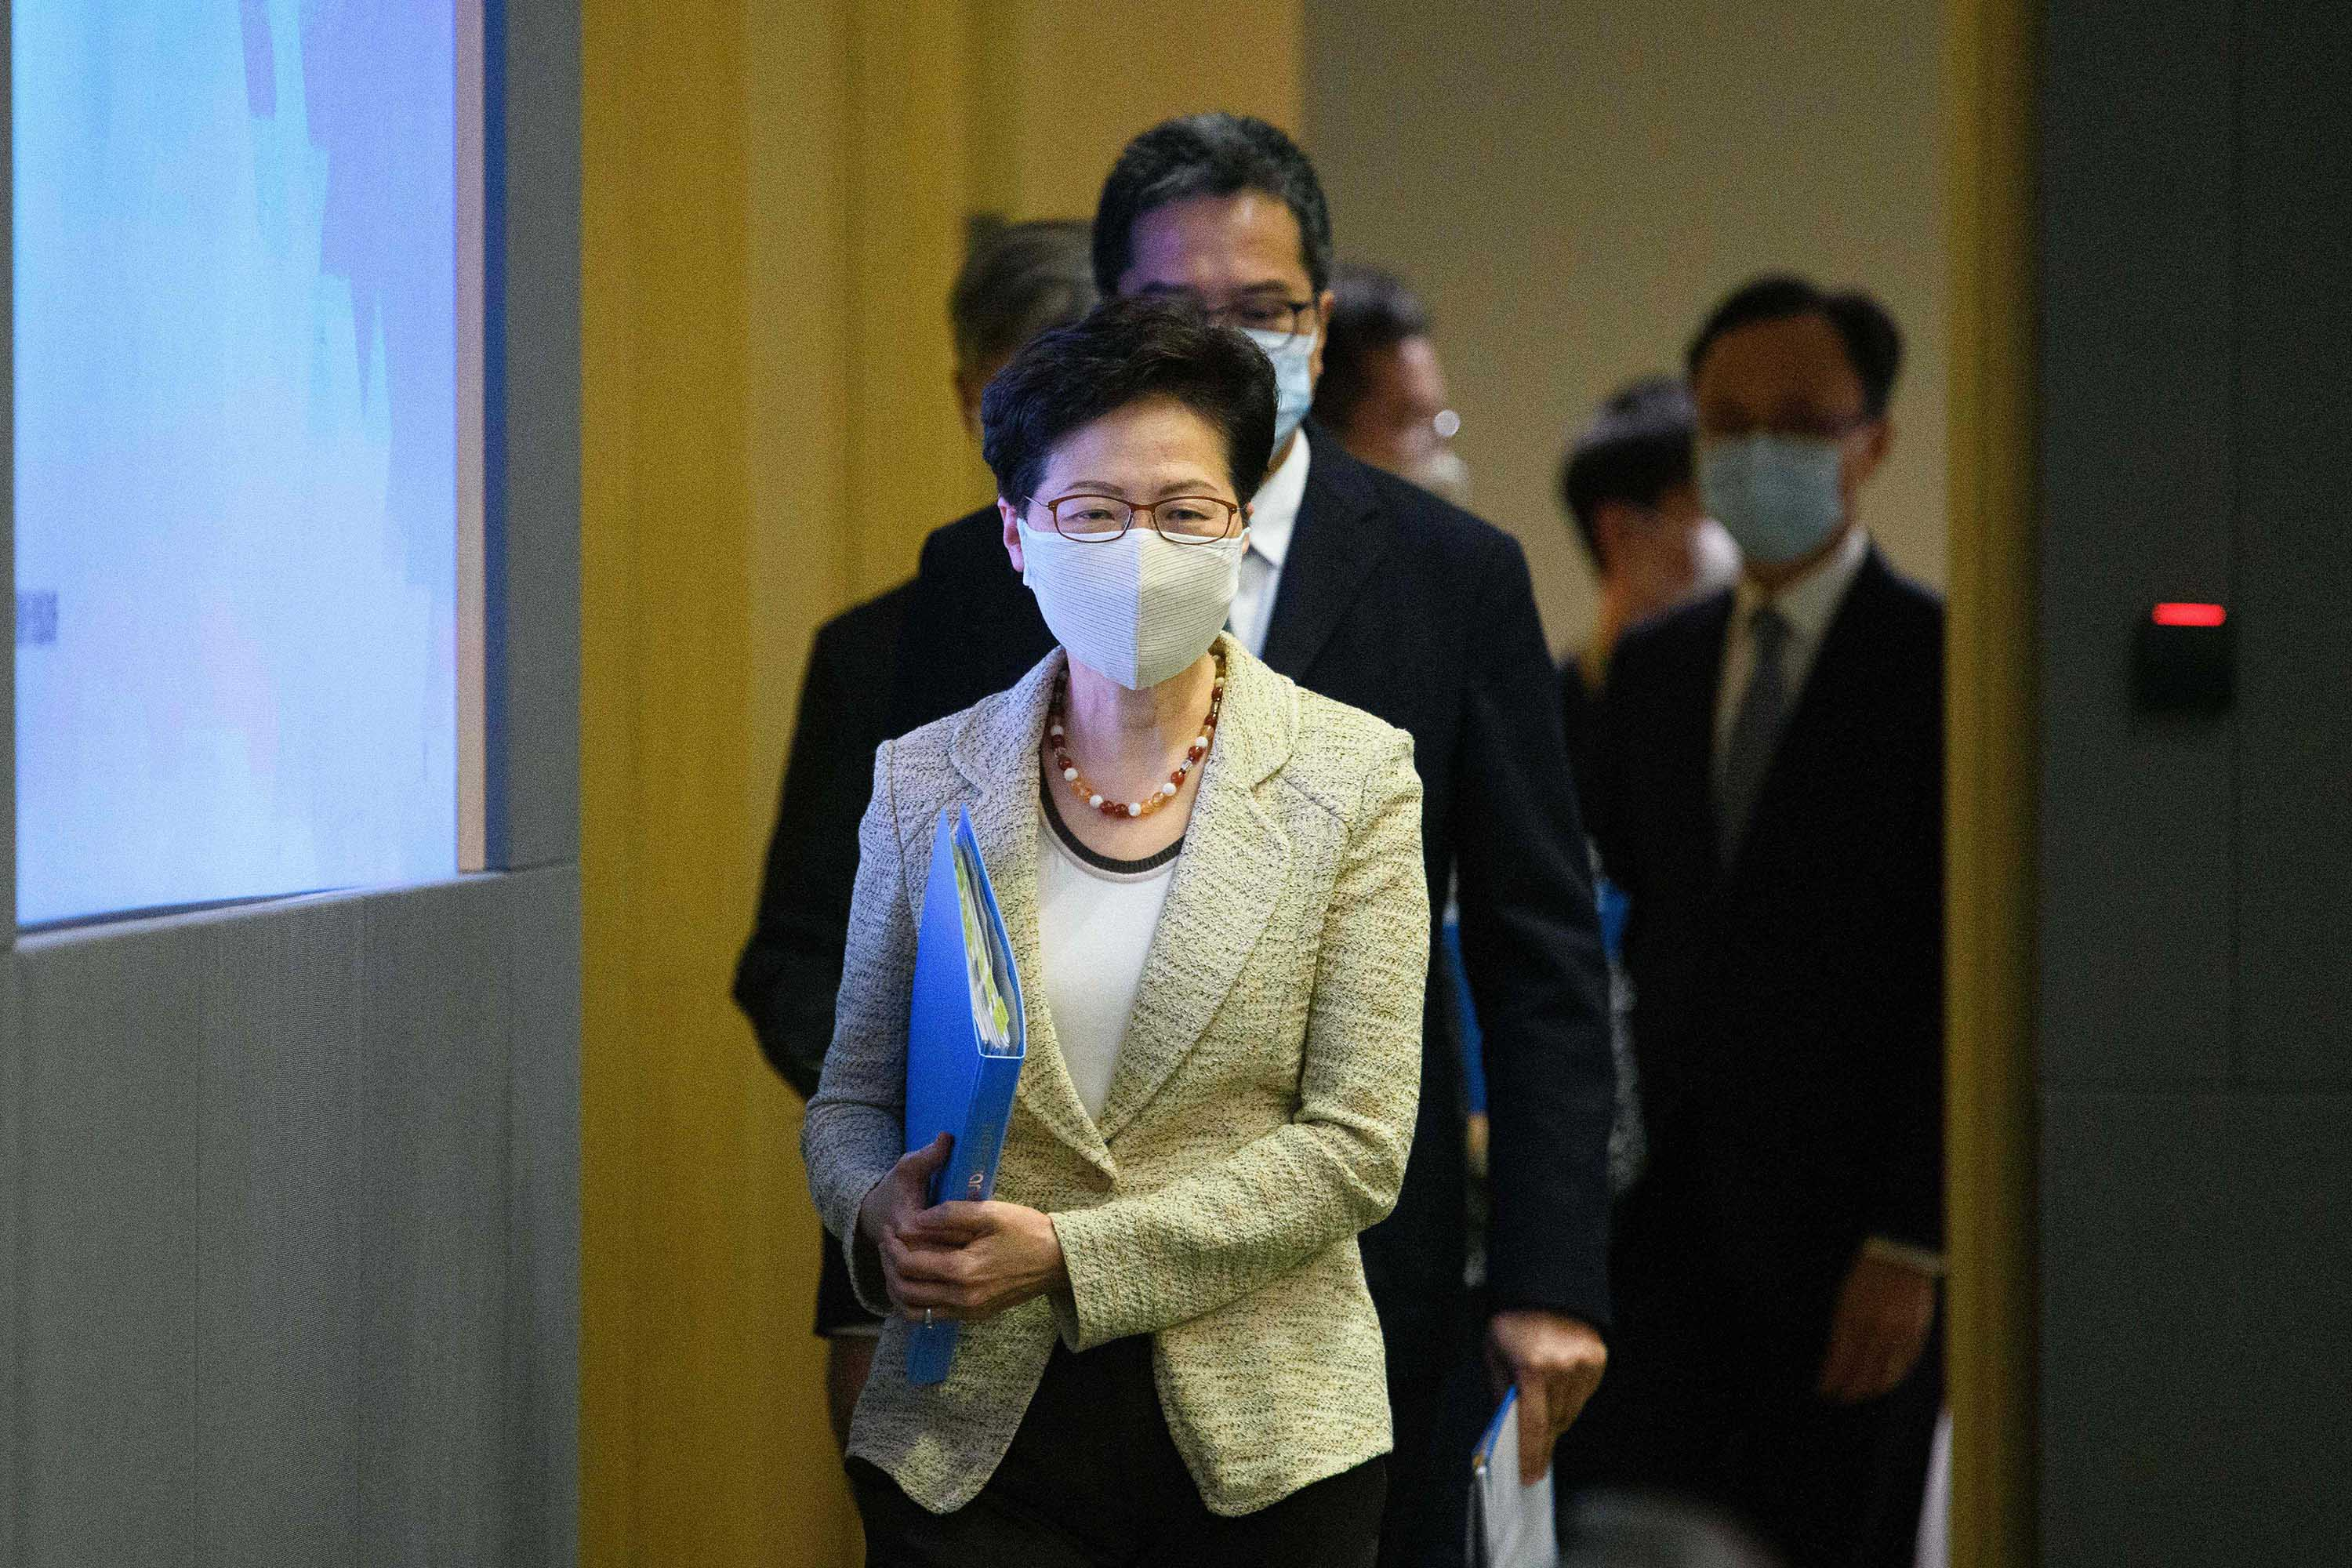 Hong Kong Chief Executive Carrie Lam and other government officials arrive for a press conference at government HQ on August 21, to provide details on the citywide testing initiative.